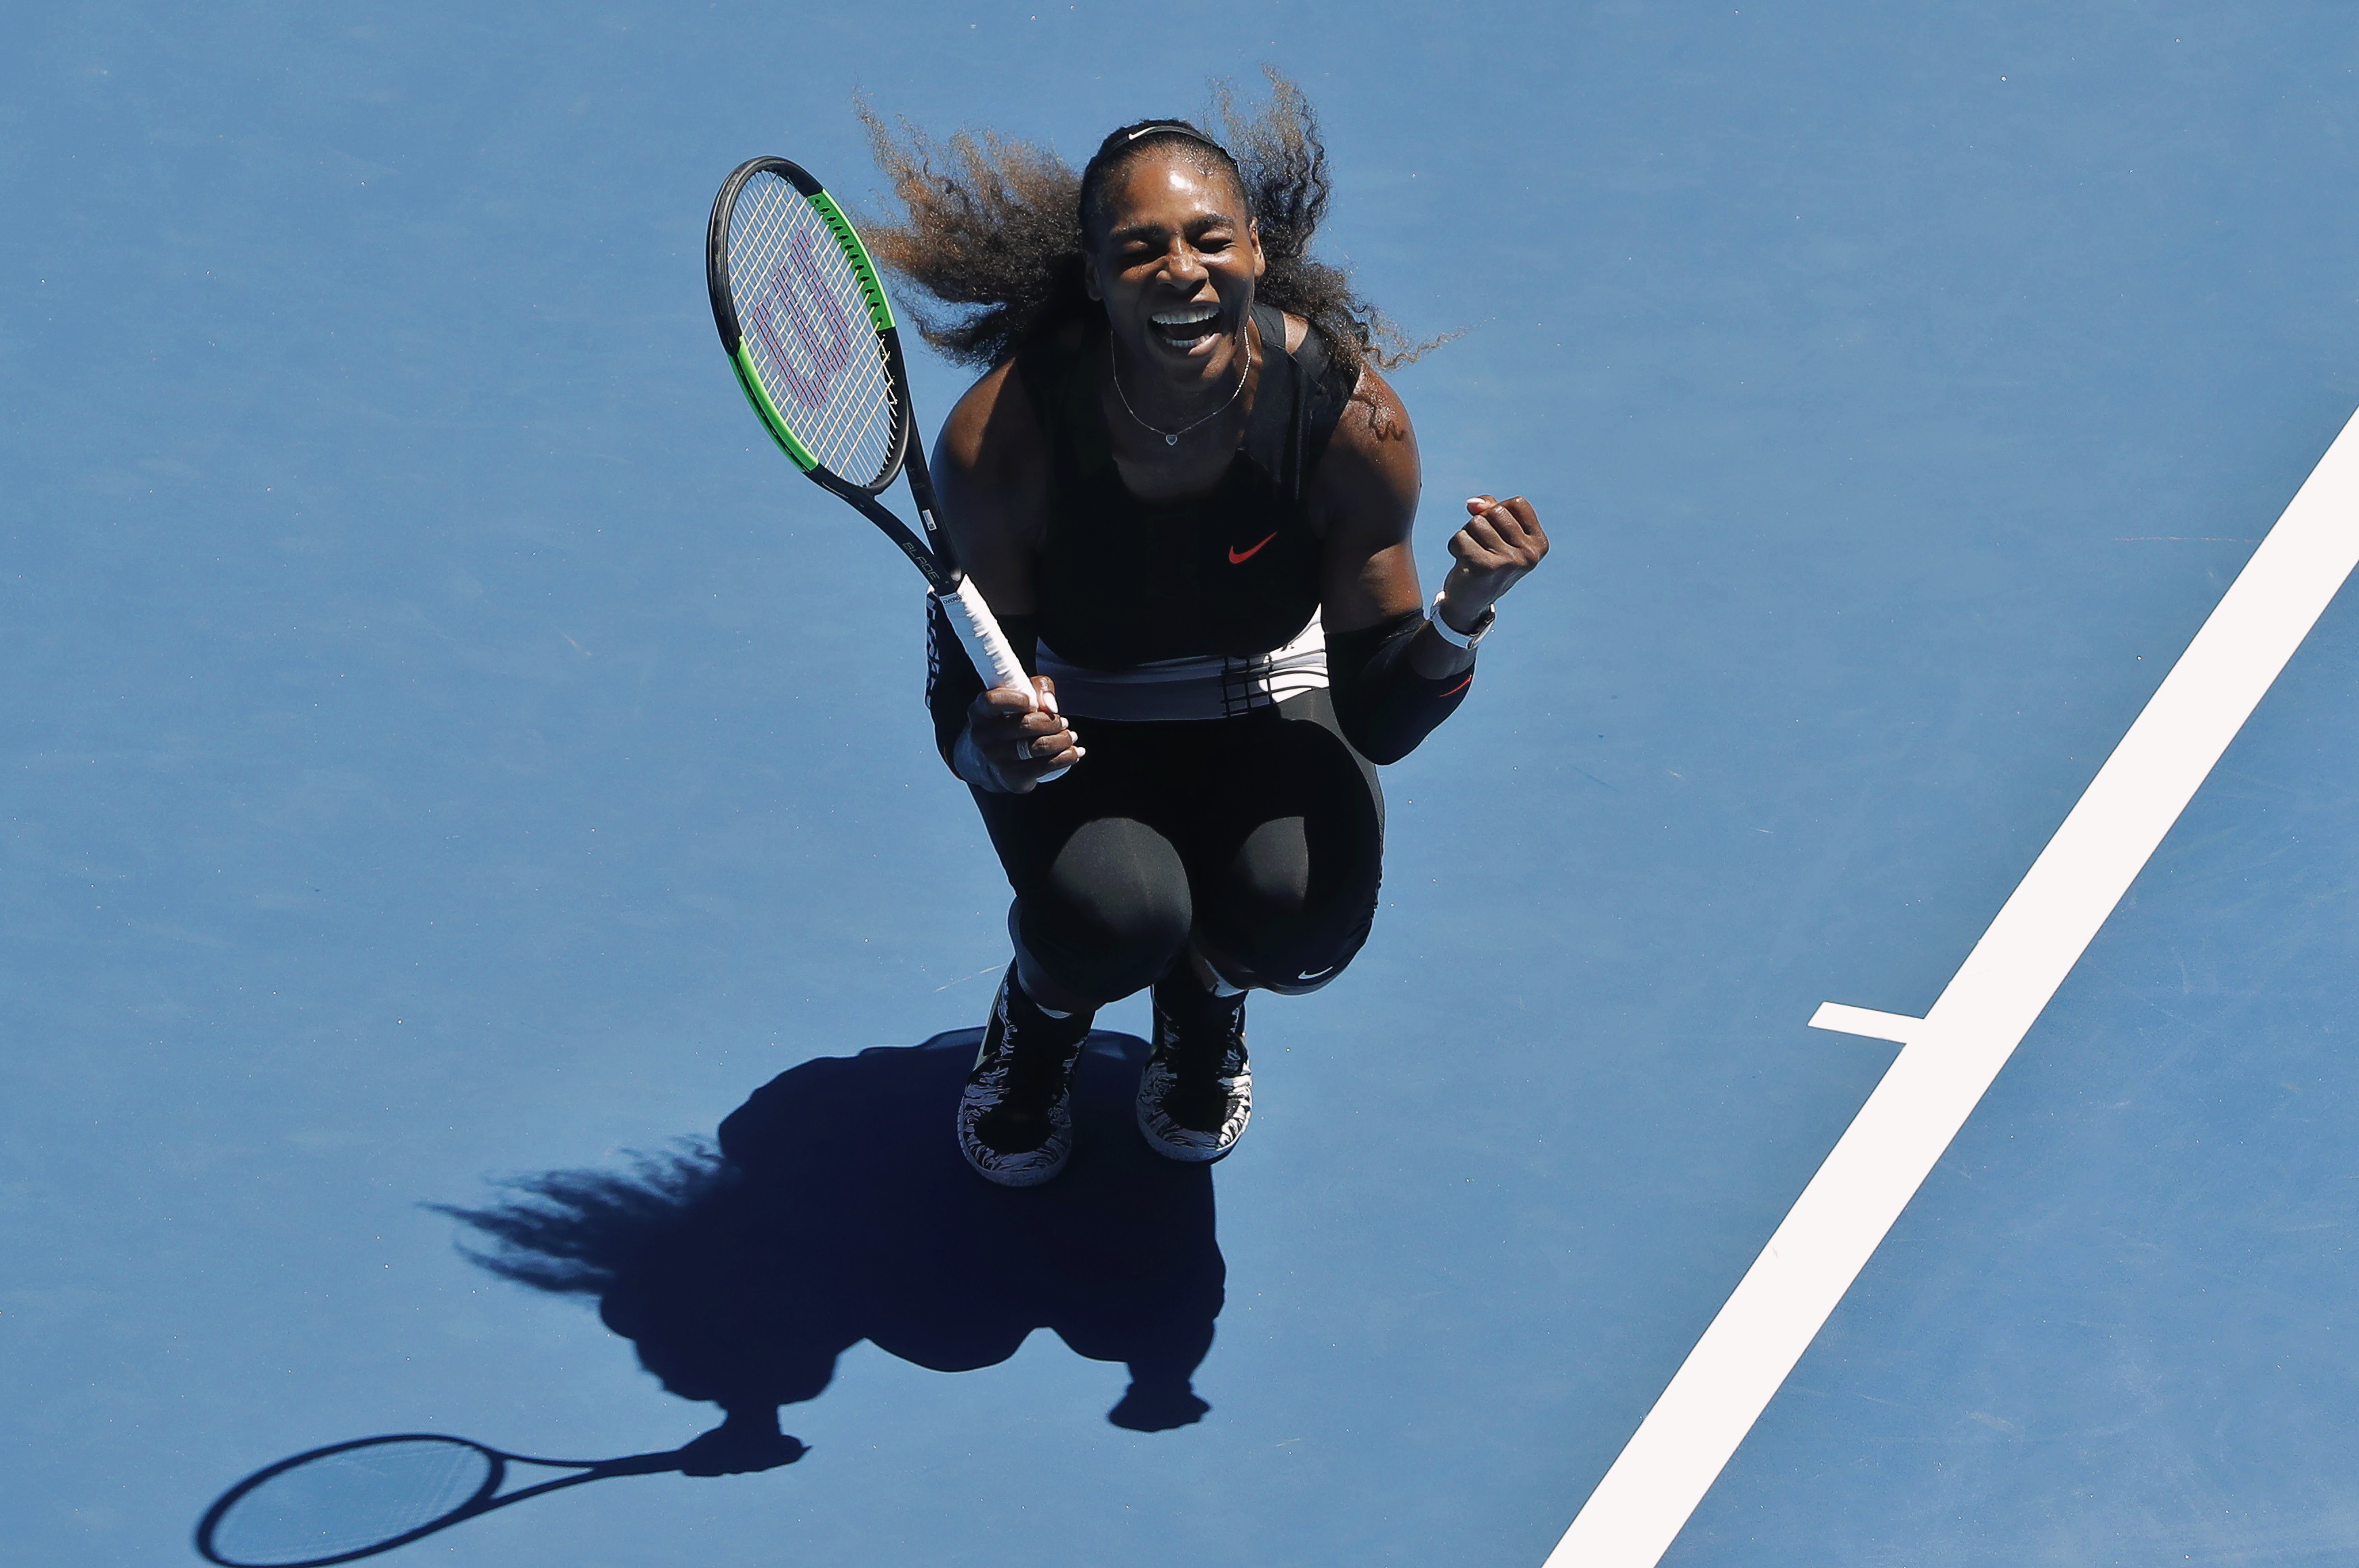 Serena Williams clenches fists in victory.